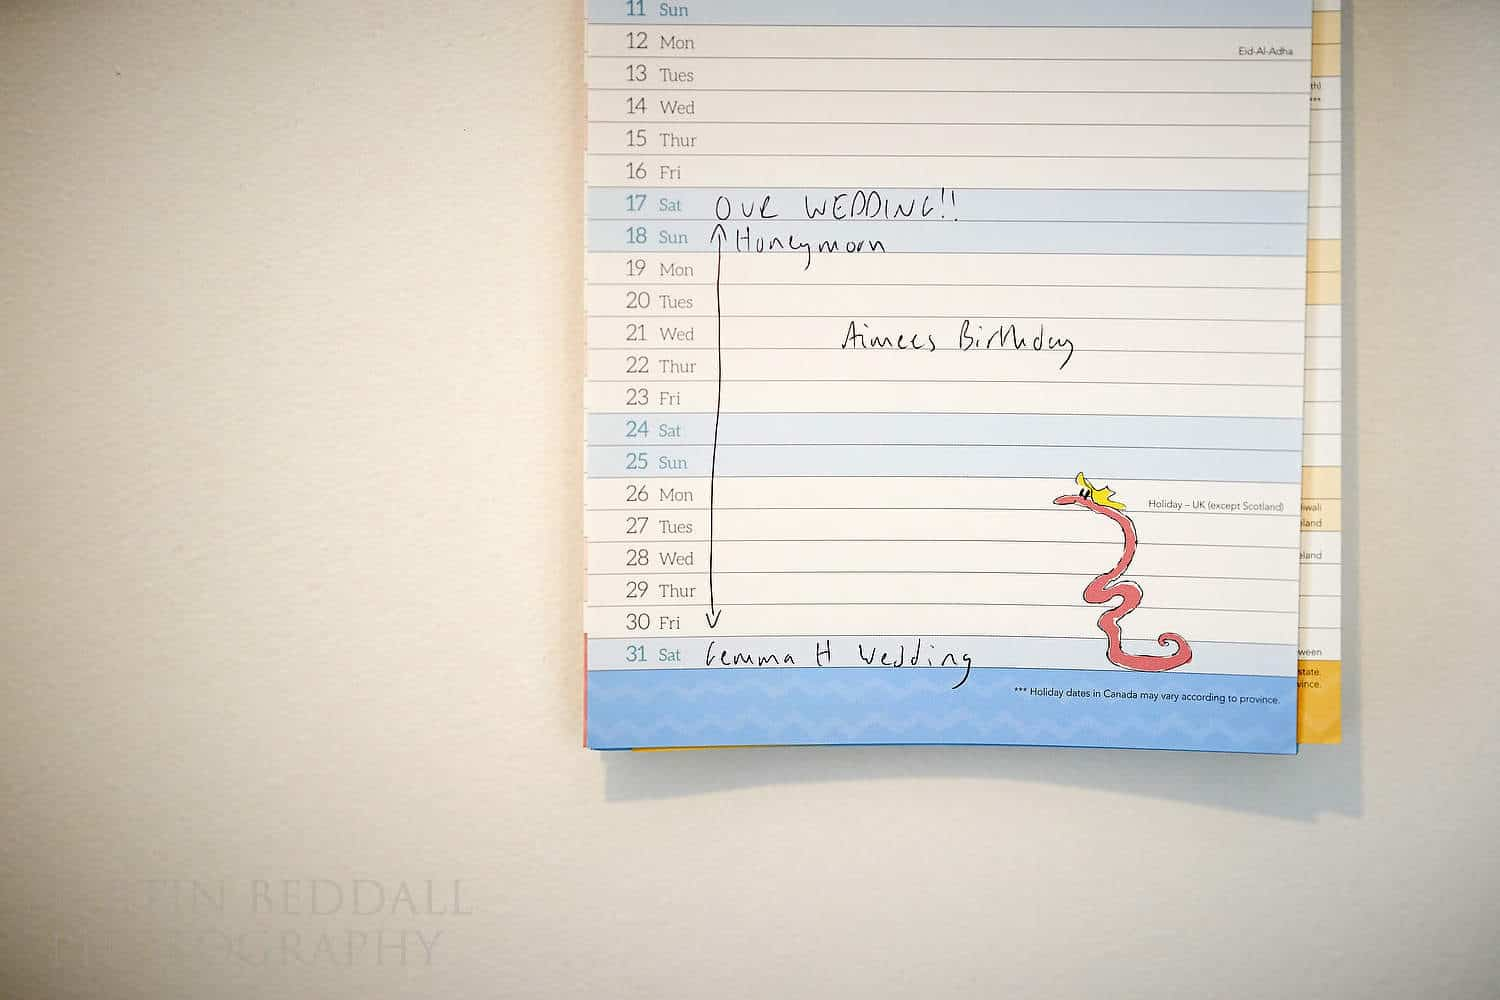 Wedding date marked on the kitchen calendar